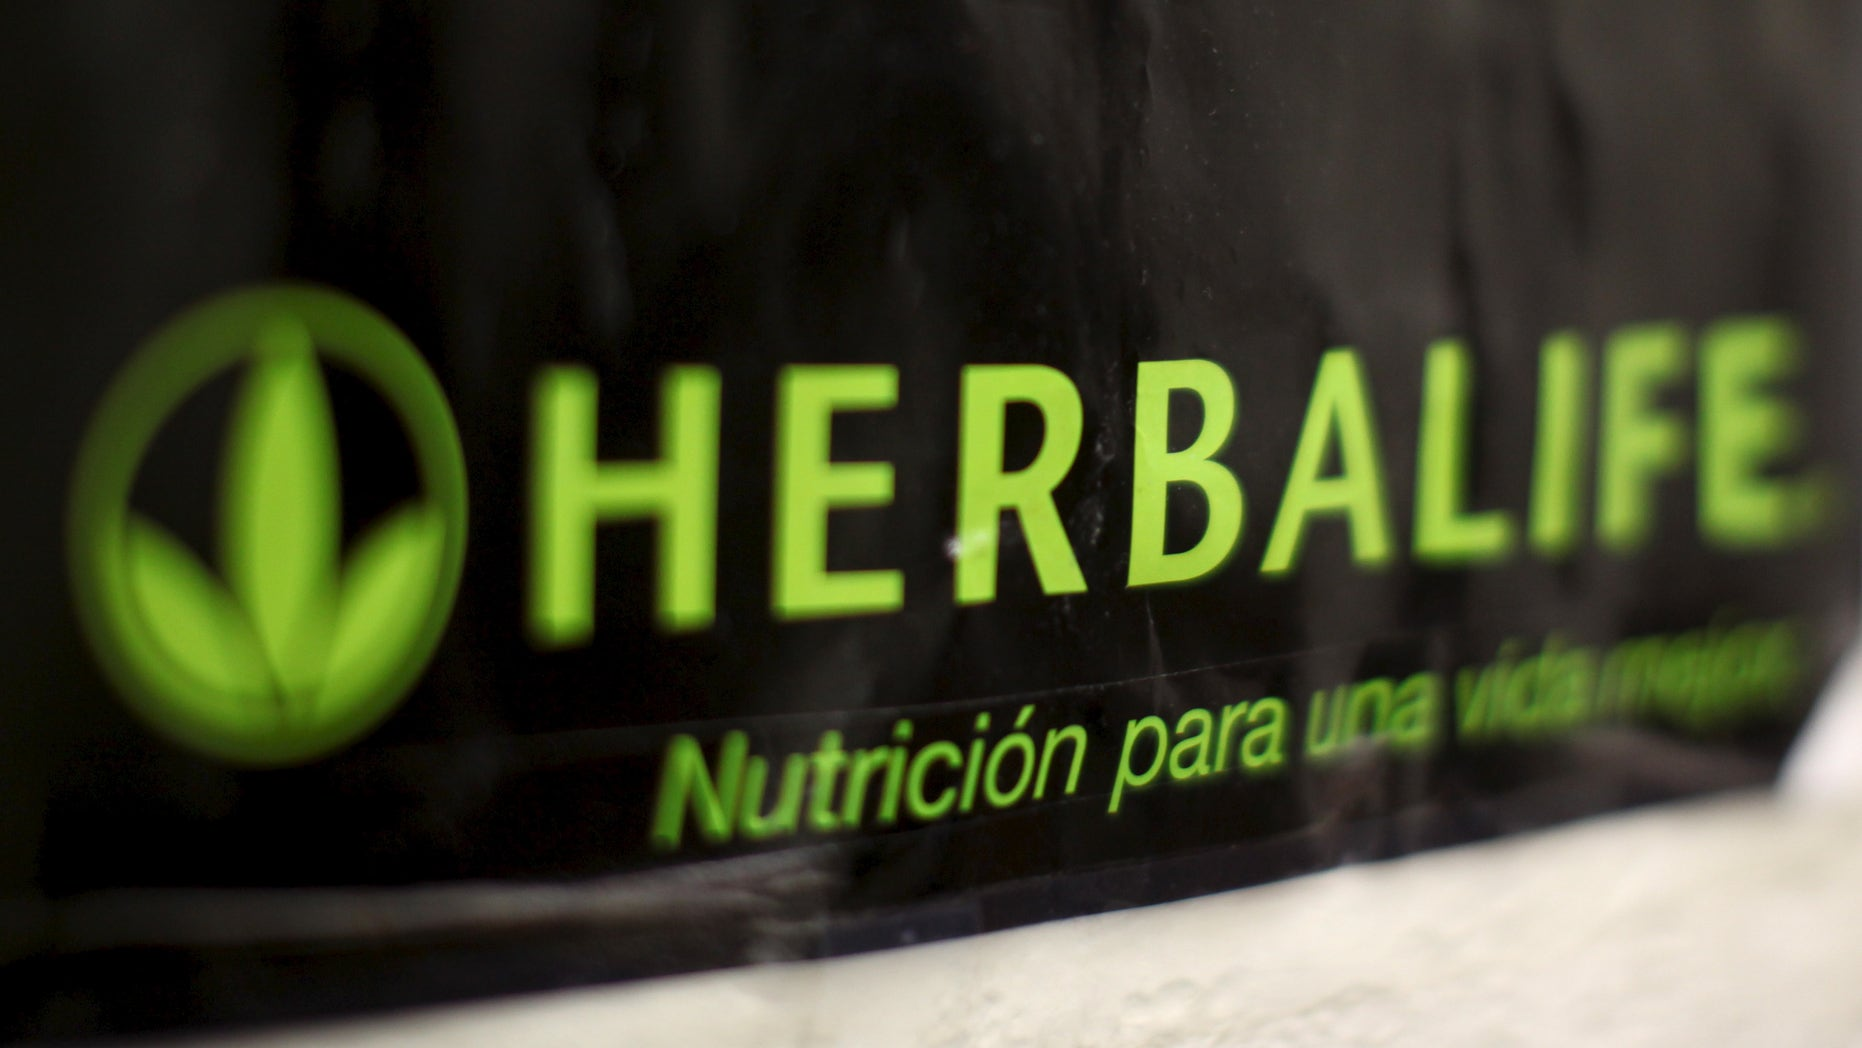 An Herbalife logo is shown on a poster at a clinic in the Mission District in San Francisco, California April 29, 2013.   REUTERS/Robert Galbraith/File Photo          GLOBAL BUSINESS WEEK AHEAD PACKAGE - SEARCH 'BUSINESS WEEK AHEAD MAY 2'  FOR ALL IMAGES - RTX2CDI4